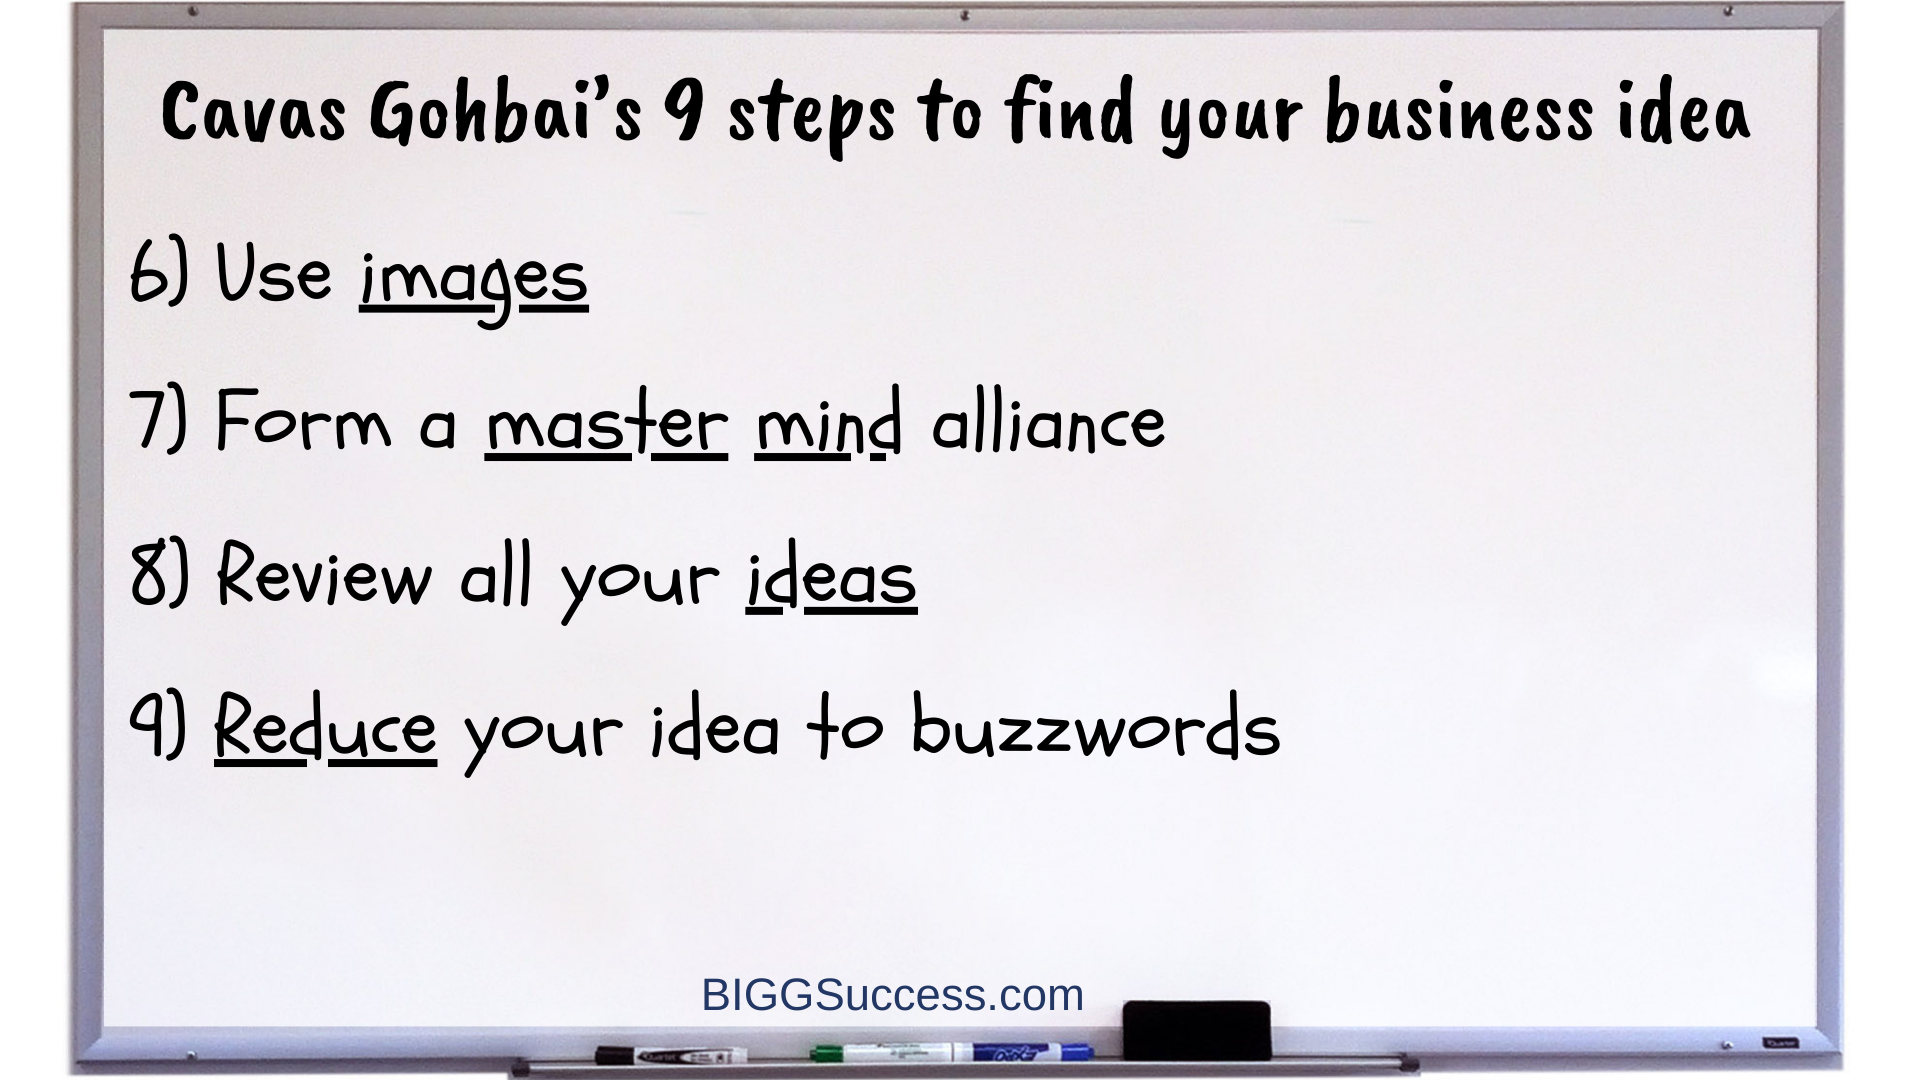 Whiteboard 1066-9 Steps to Find Your Business Idea 2